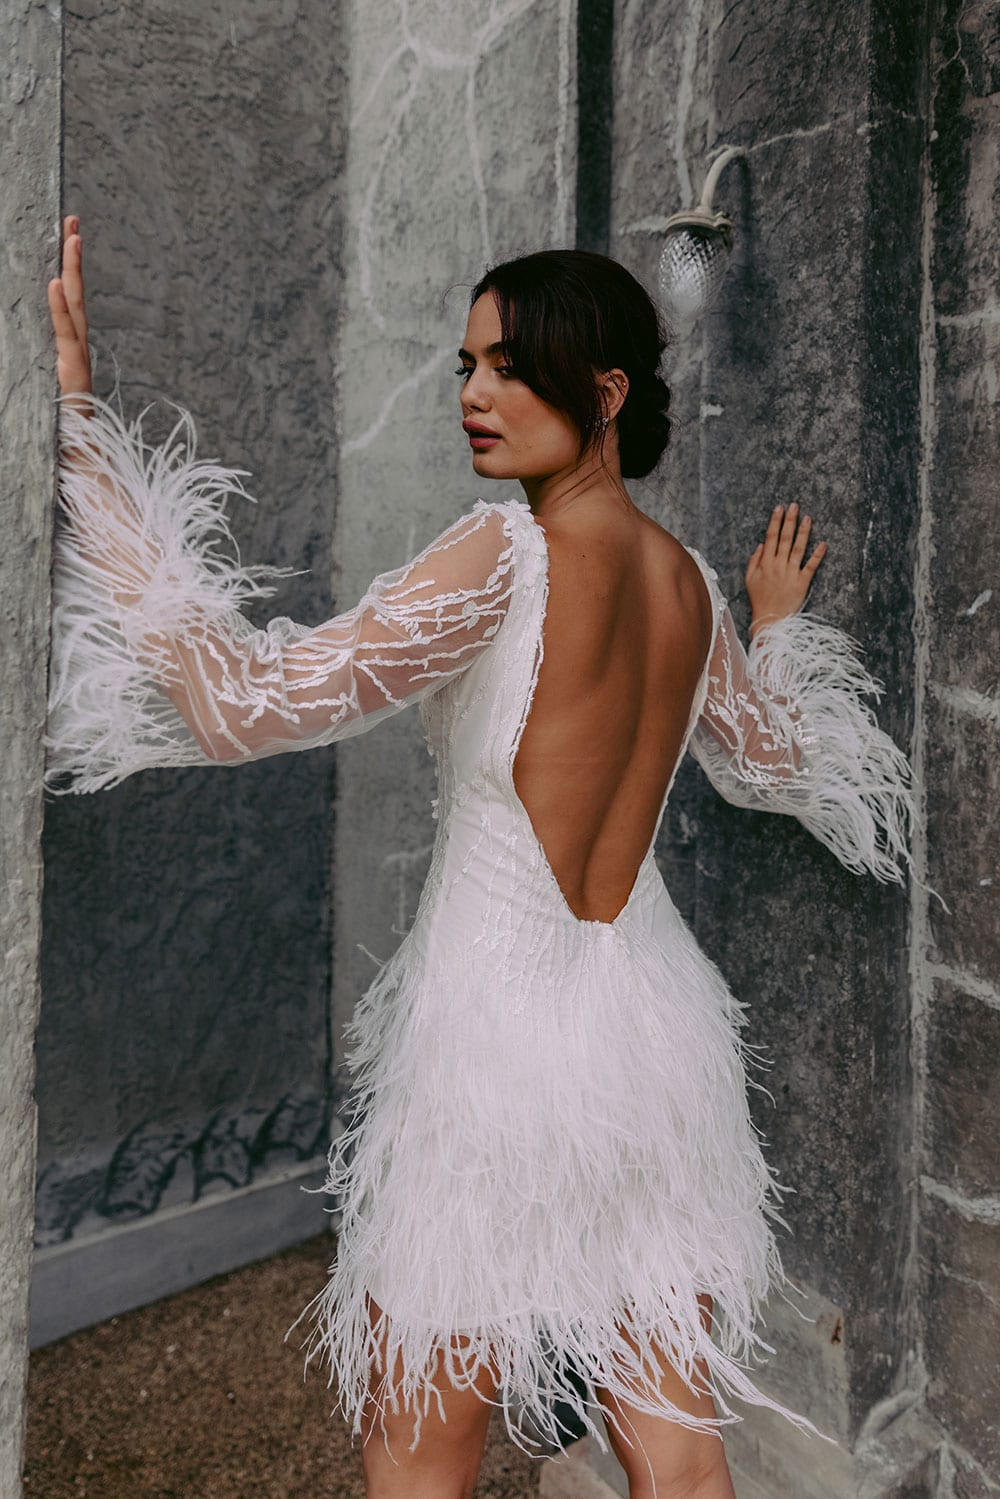 Nikora Wedding gown from Vinka Design - This sexy gown is sure to turn heads! Adorned with feathers that accentuate movement and bell sleeves that add flare, a high neckline, and low back. Model wearing gown facing away with arms raised showing back of dress and long sleeves.